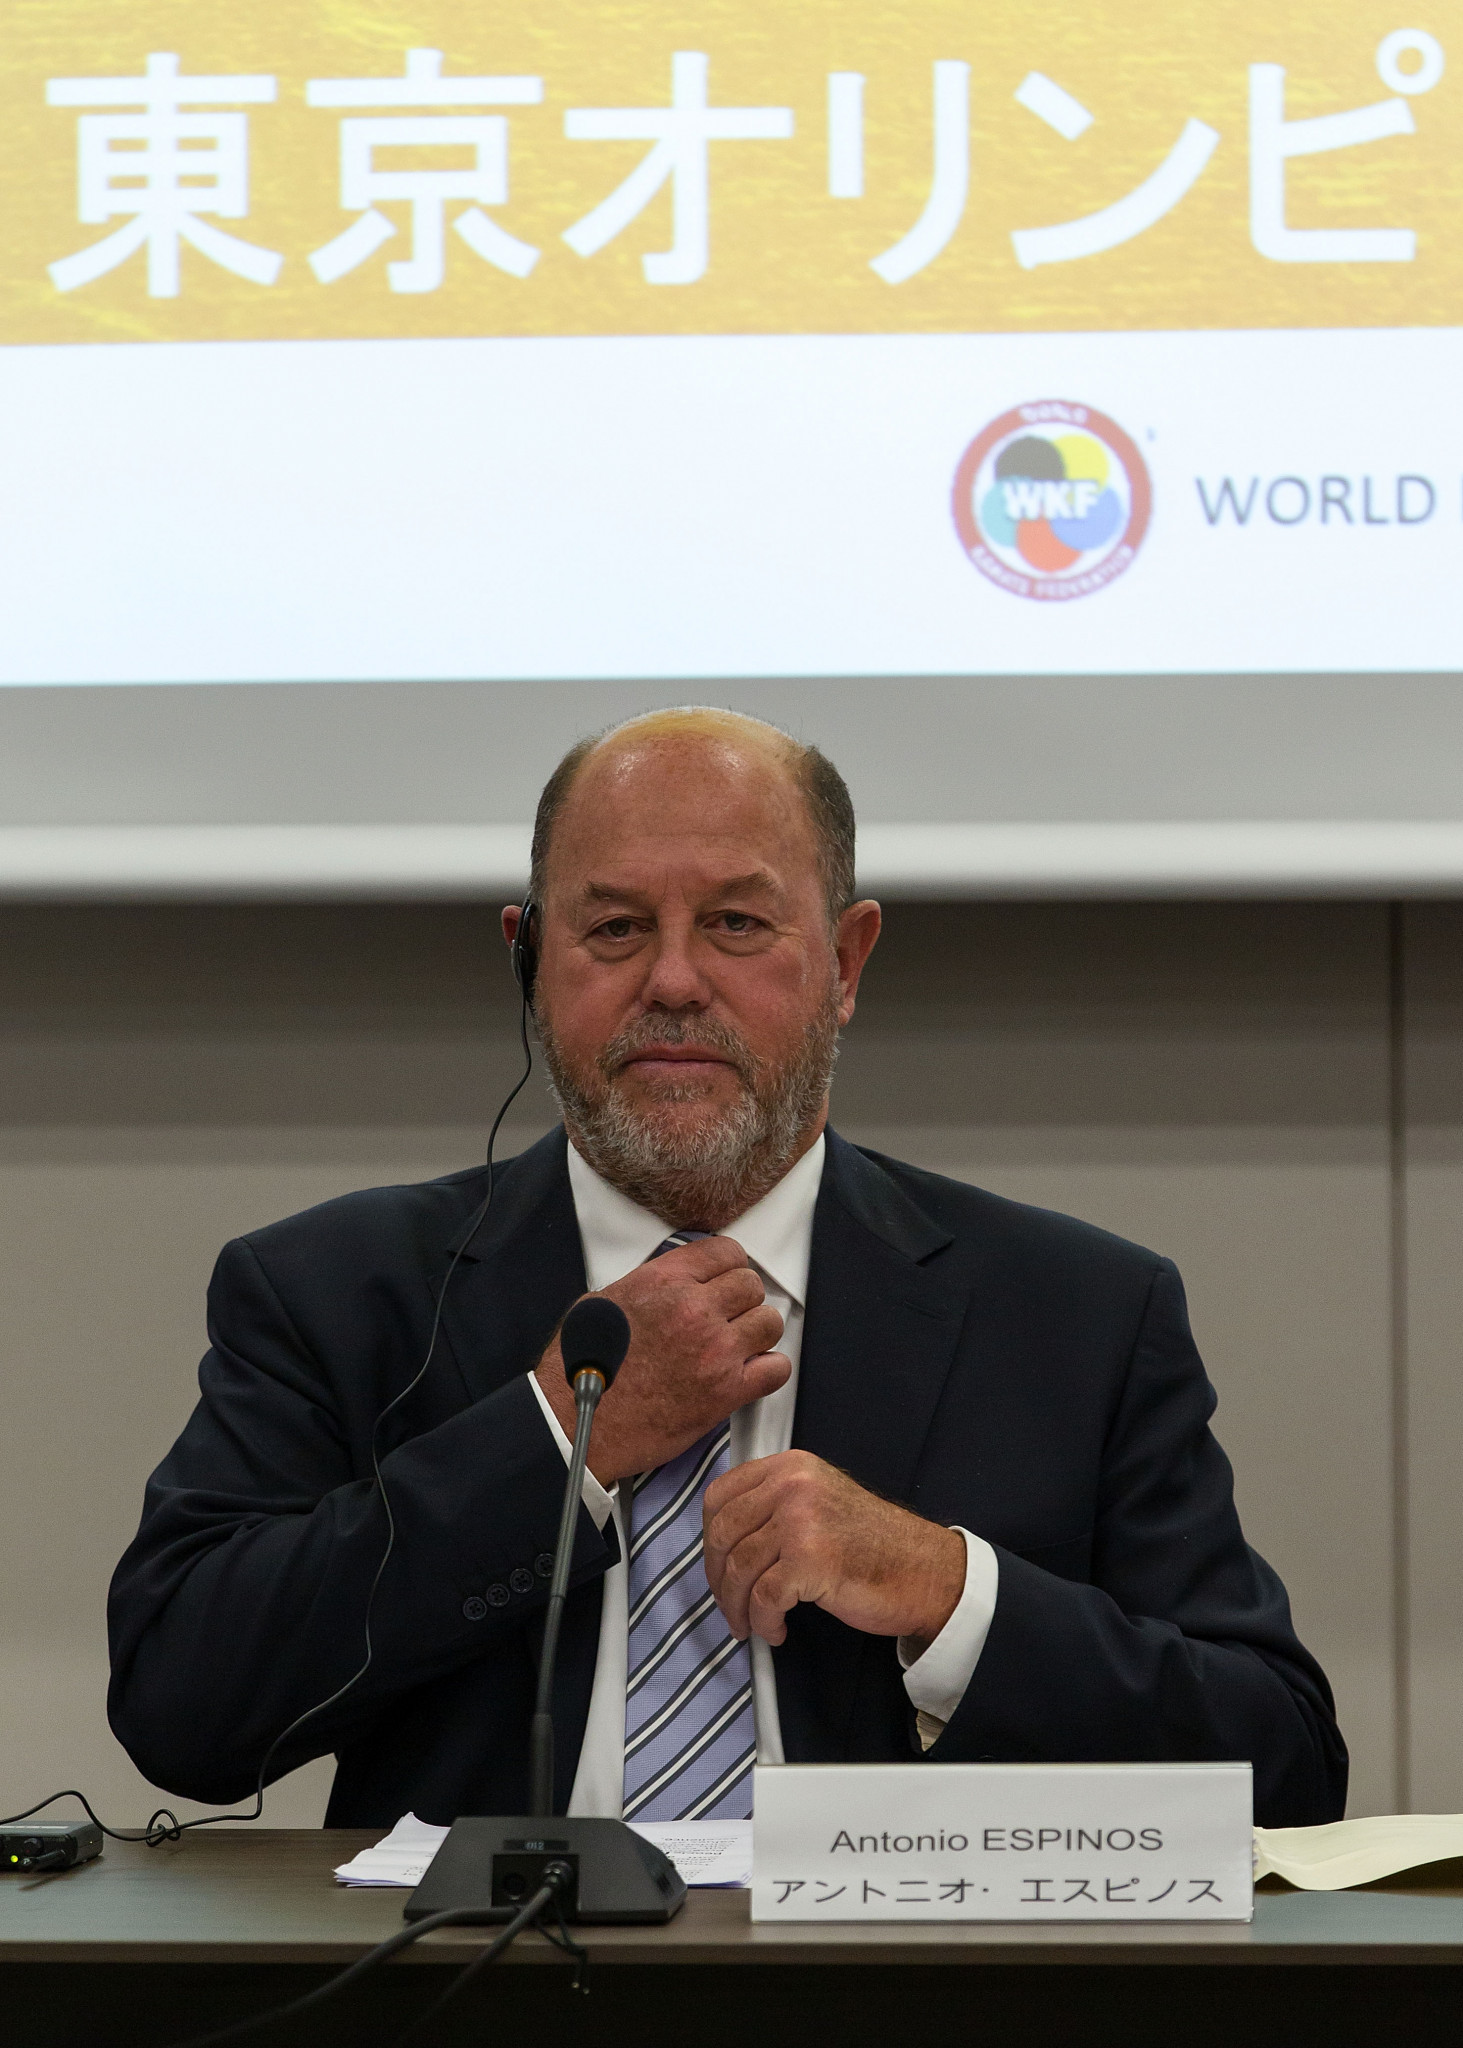 WKF President Antonio Espinós claimed the reasoning behind karate's exclusion from Paris 2024 was